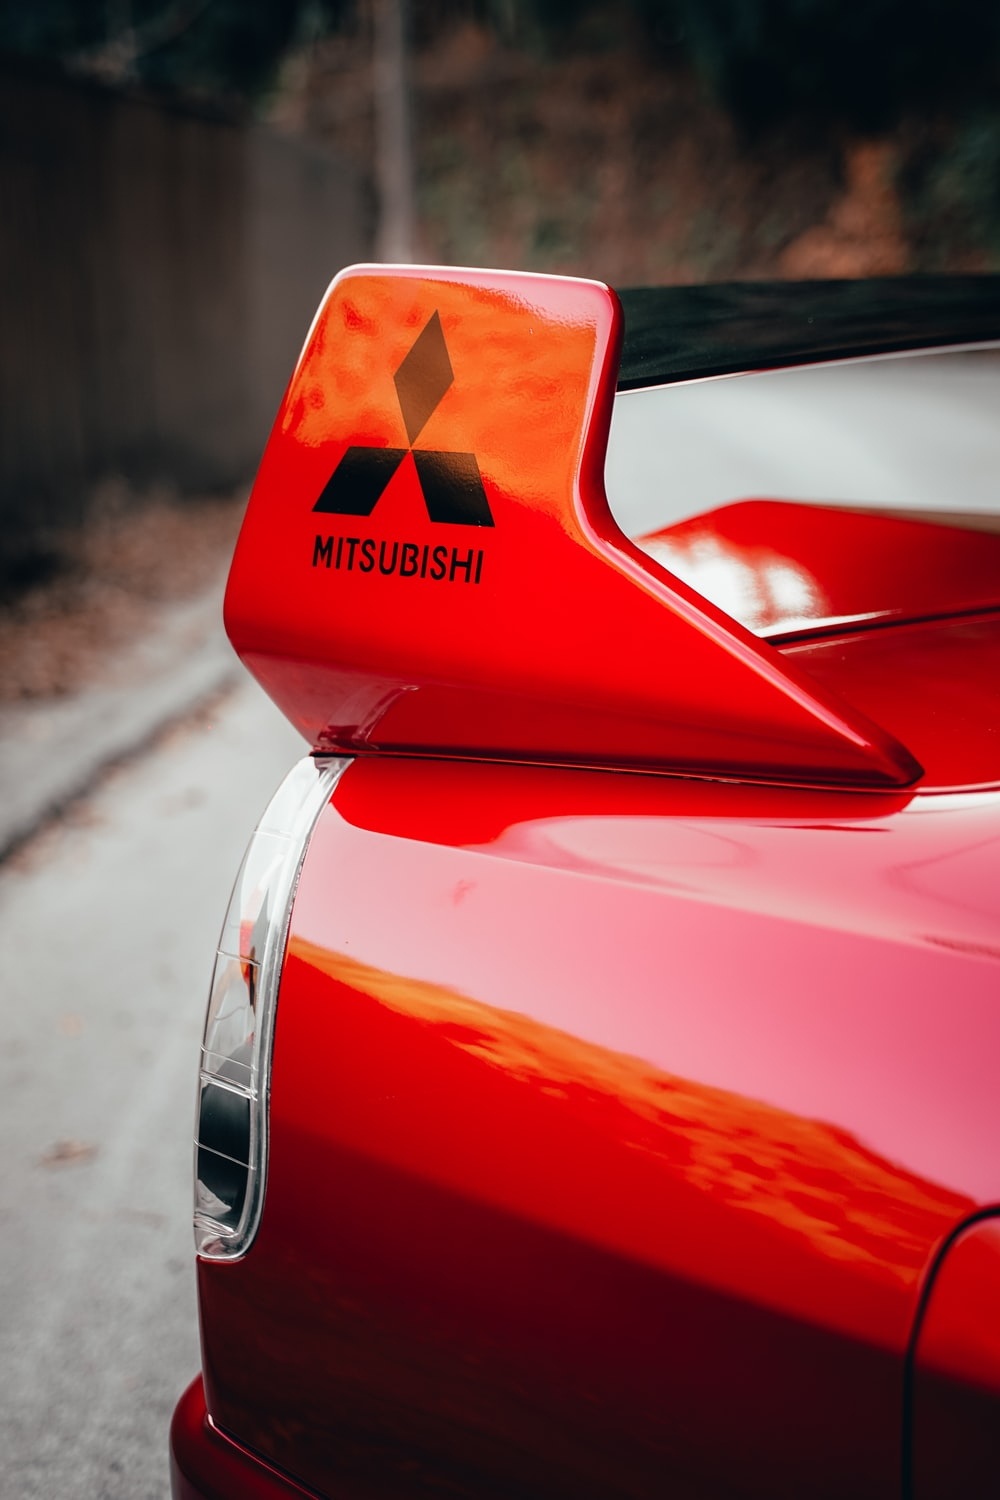 red car with white arrow